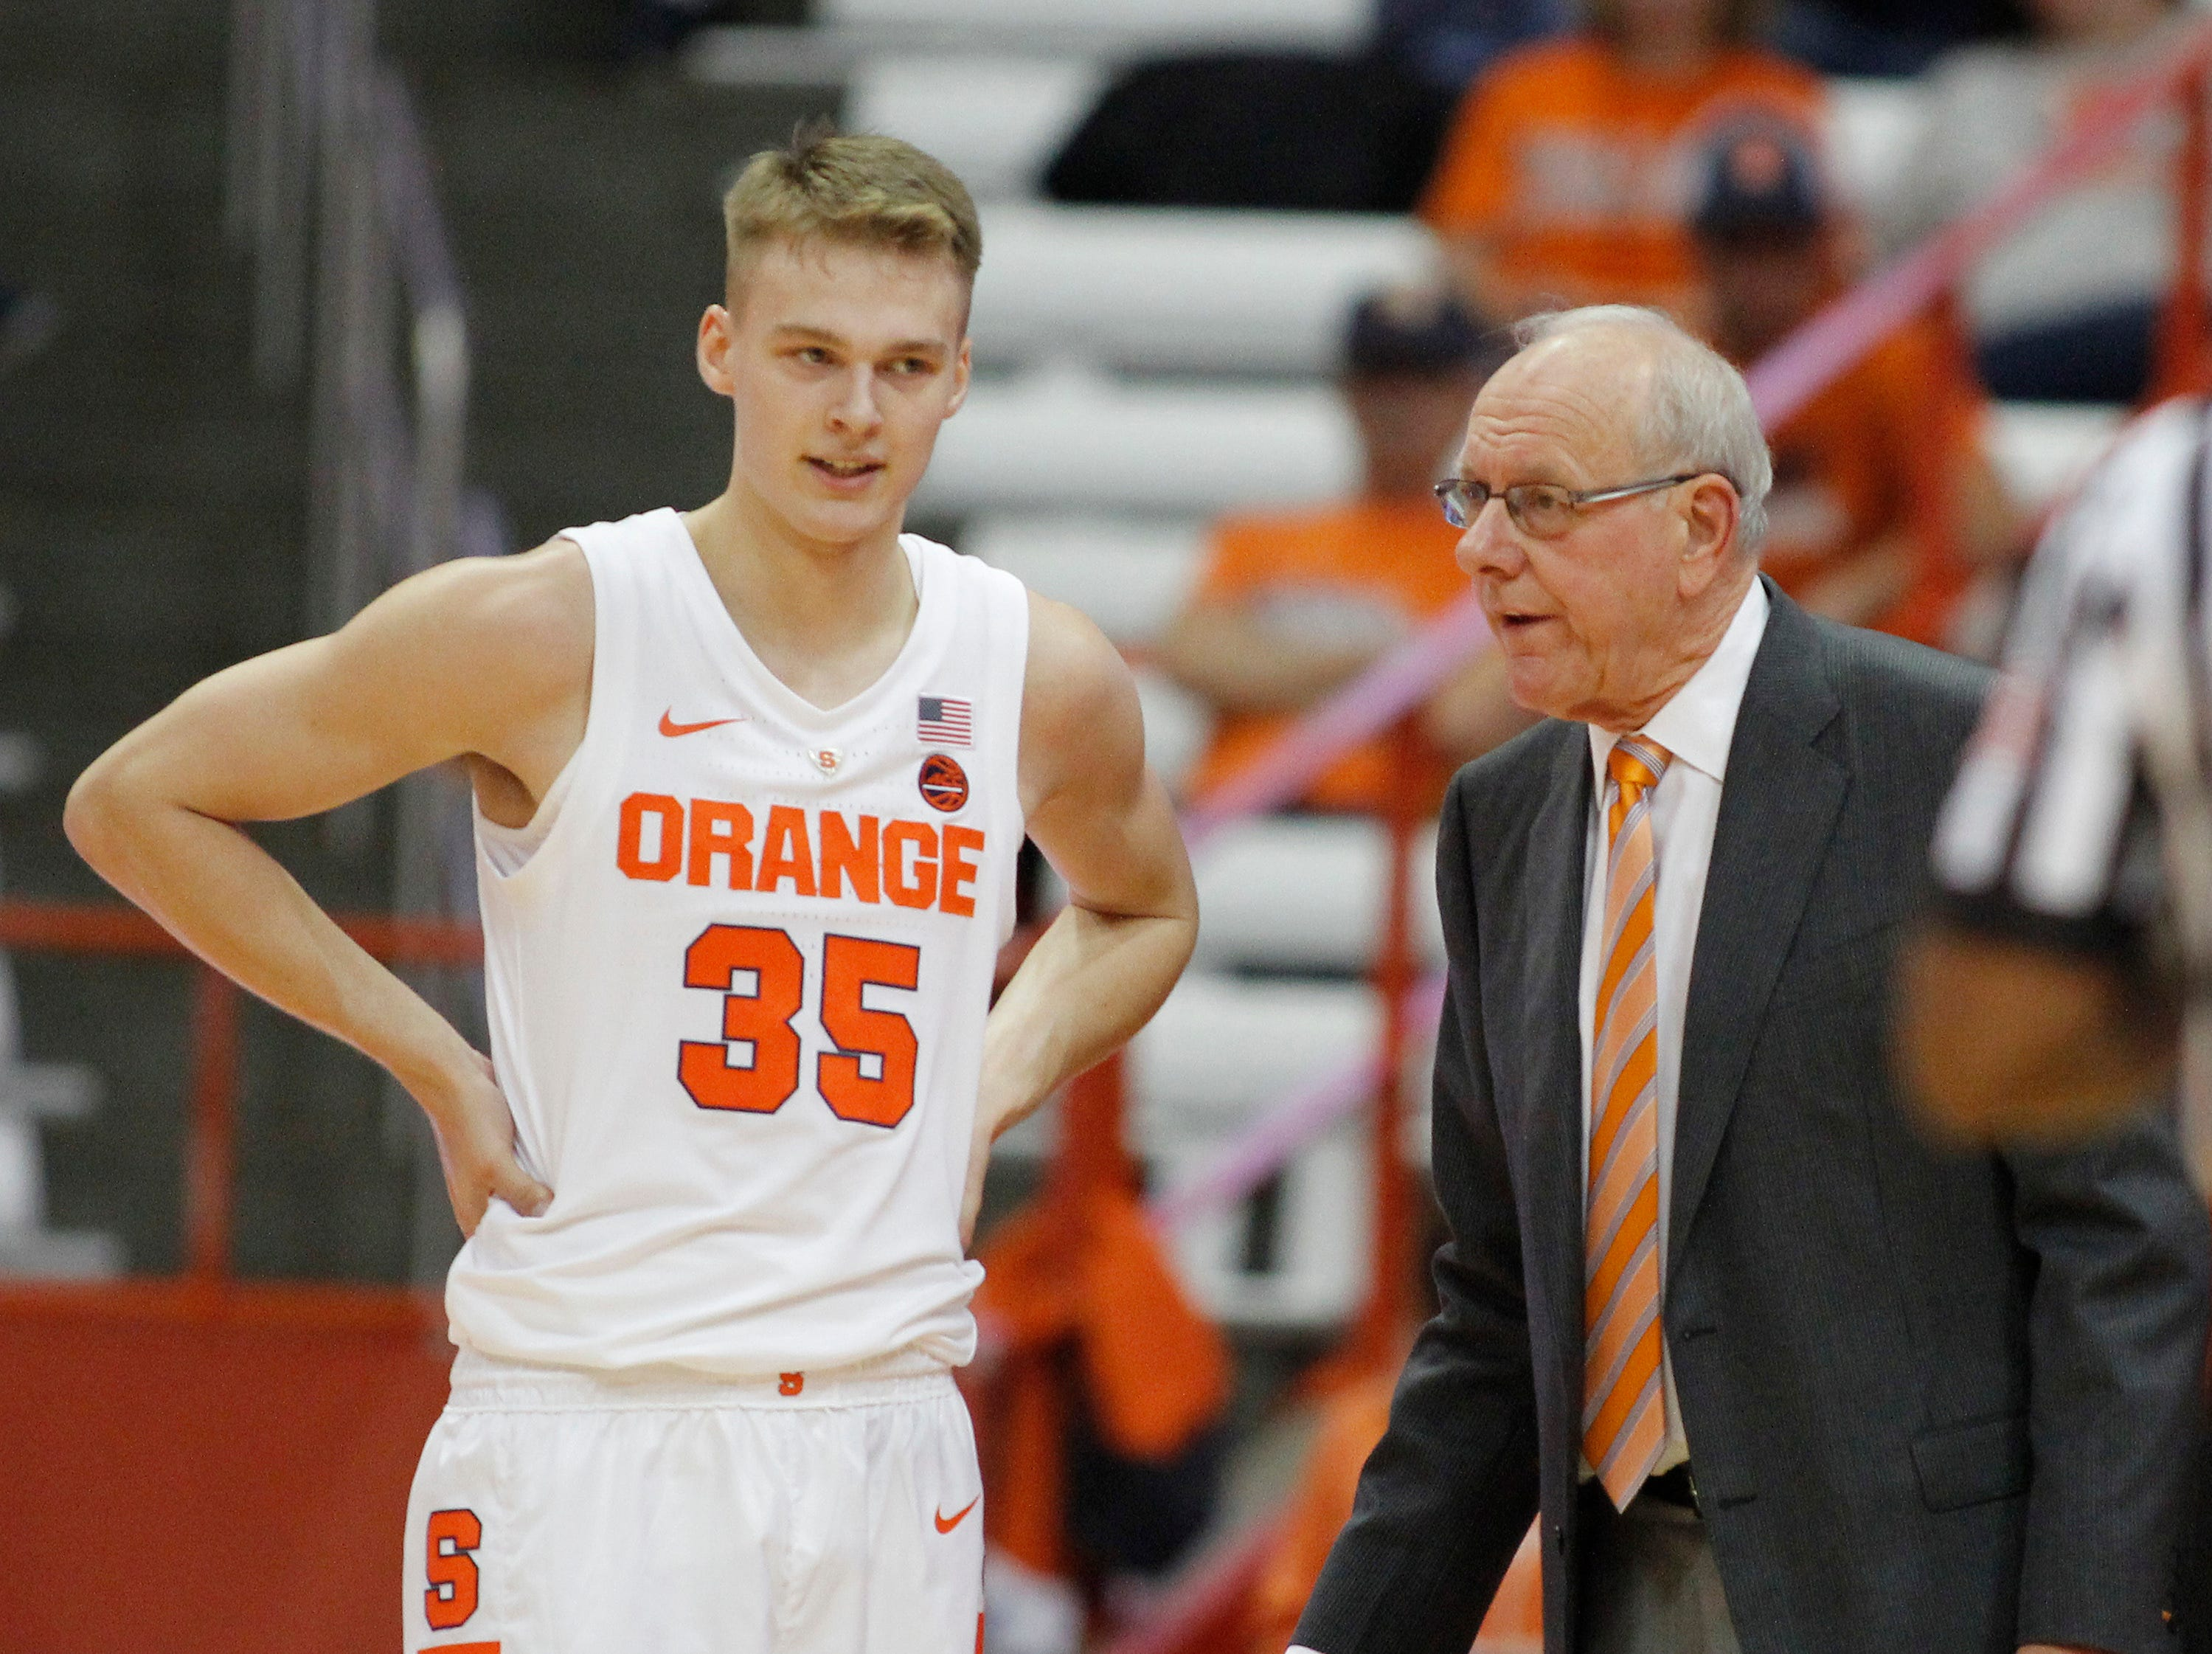 Syracuse coach Jim Boeheim, right, talks to his son Buddy Boeheim, left, during the first half of the team's college basketball exhibition game against Le Moyne in Syracuse, N.Y., Wednesday, Oct. 31, 2018. (AP Photo/Nick Lisi)